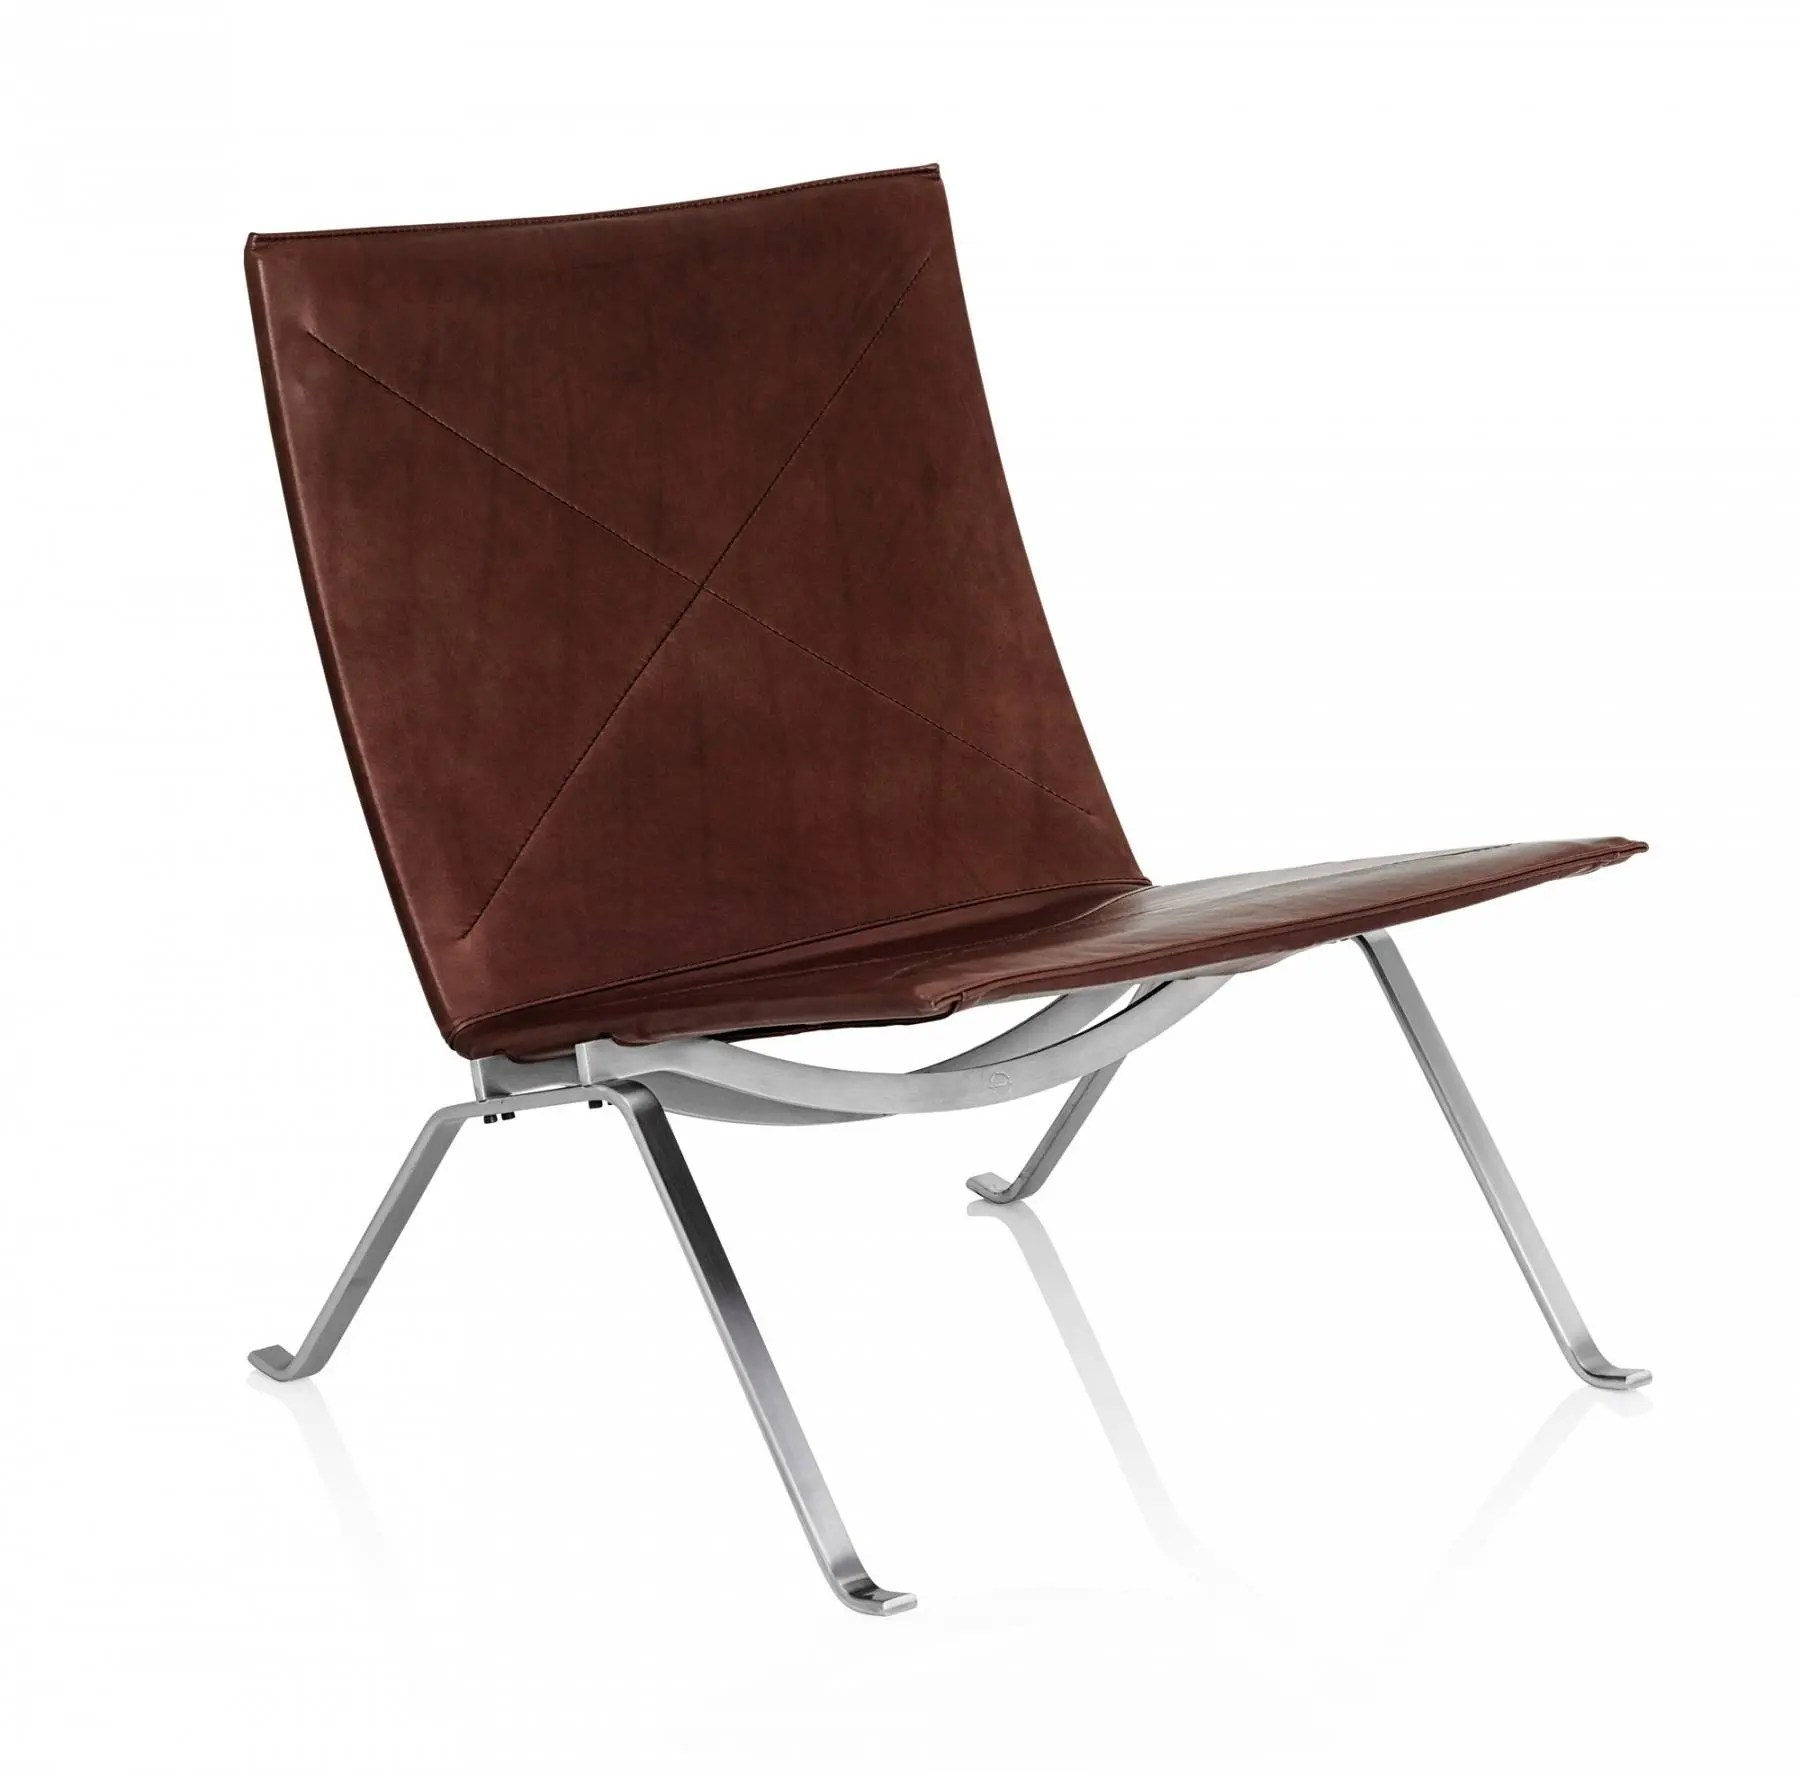 Pk22 Chair Fritz Hansen Pk22 Lounge Chair